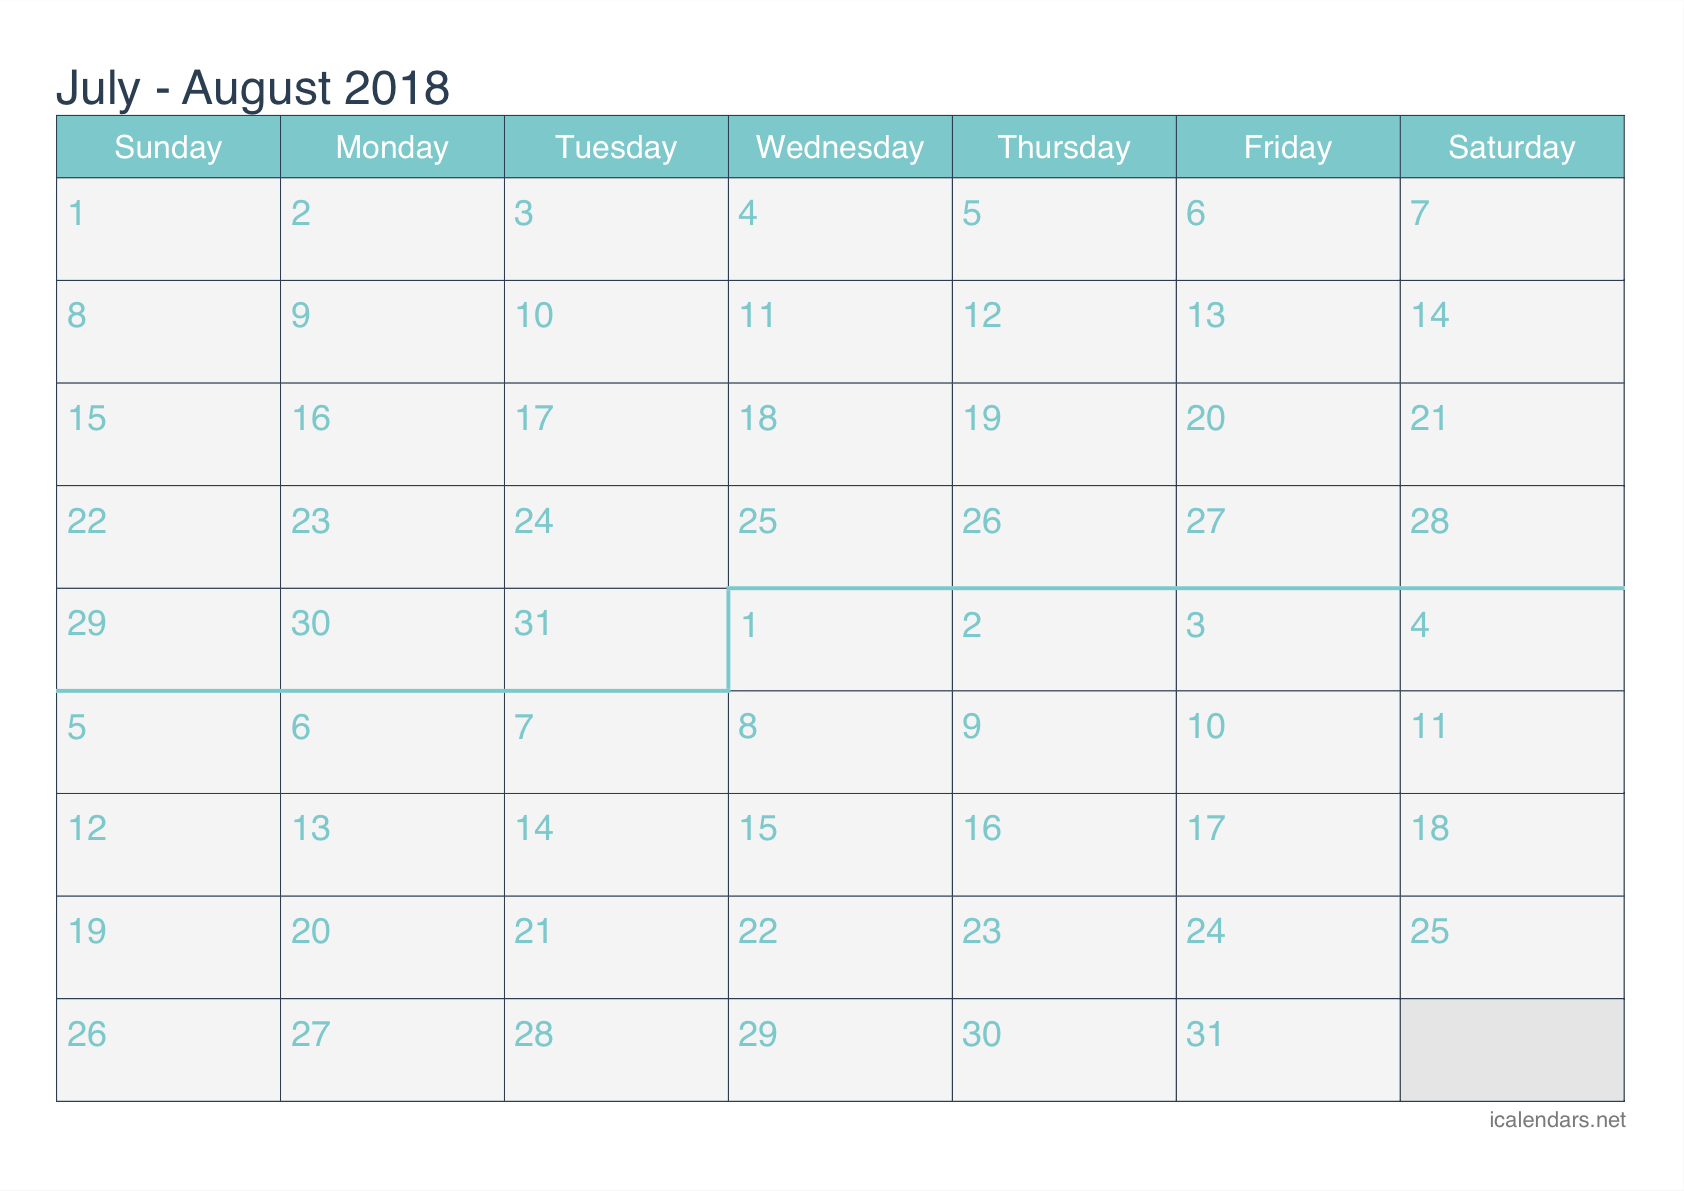 2018 july and august calendar turquoise 2018 july and august calendar turquoise